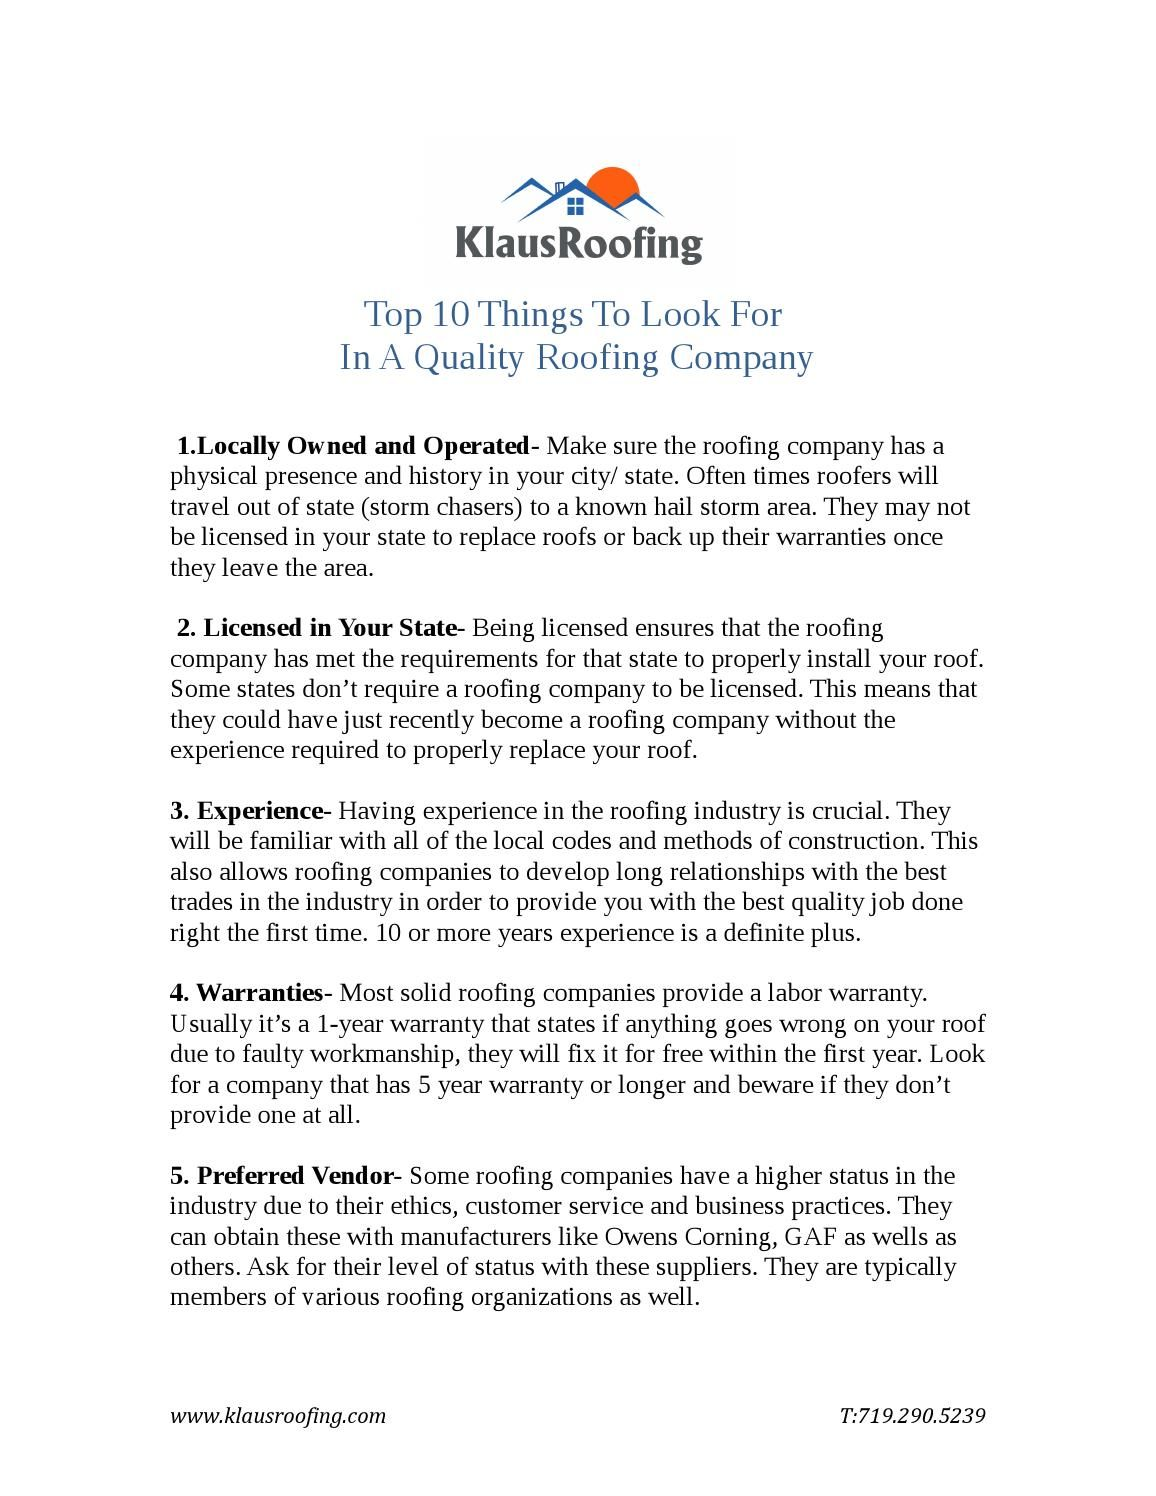 Top 10 Things To Look For In A Quality Roofing Company Roofing Best Roofing Company Roofing Companies